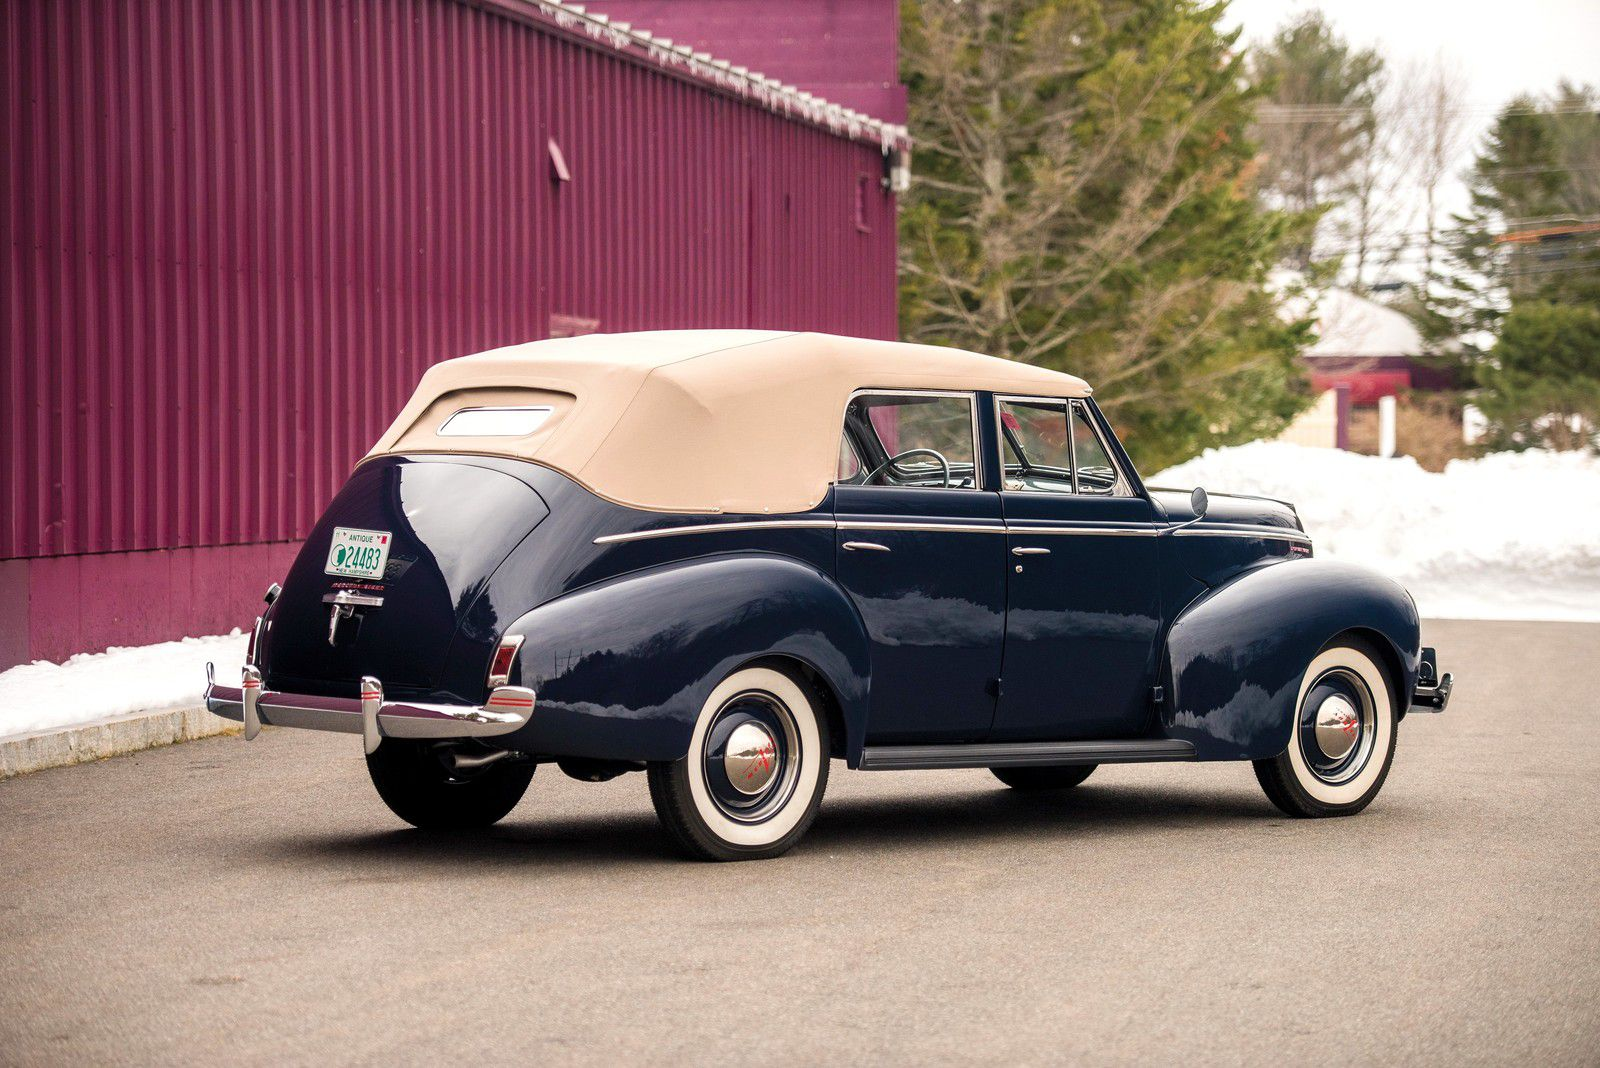 VOITURES DE LEGENDE (1135) : MERCURY EIGHT  CONVERTIBLE SEDAN - 1940